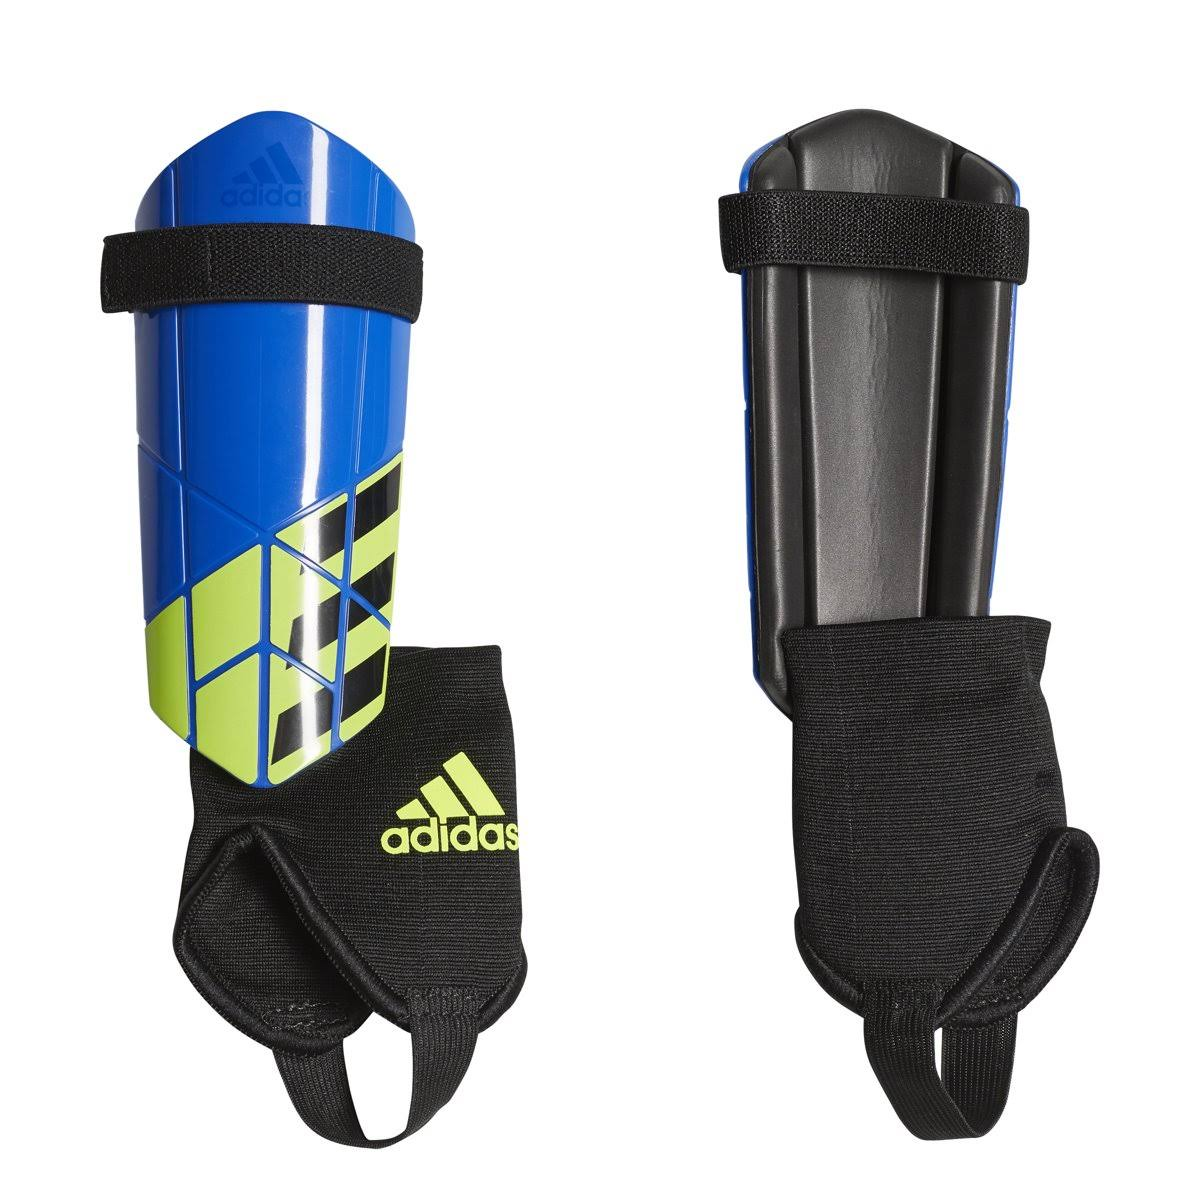 Adidas Youth x Shin Guards Blue / Small